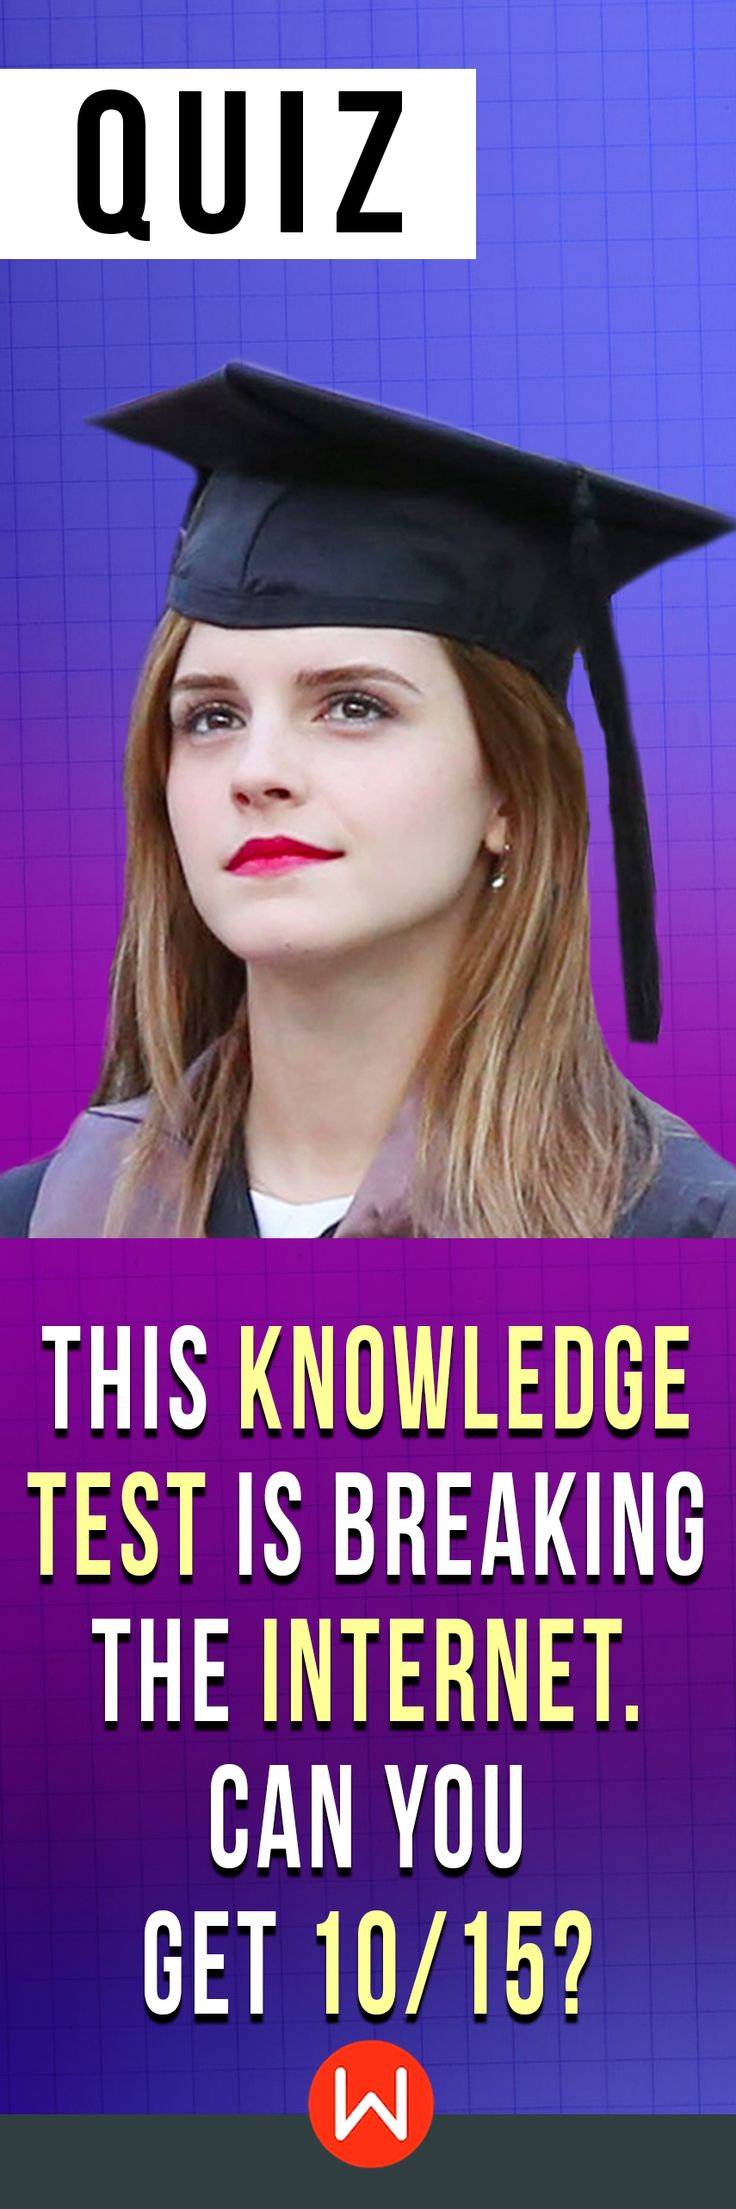 Do you have the power of knowledge? Are you smarter that Hermione Granger? Let's see if you can ace these knowledge trivia questions. knowledge quiz, Fun quiz, Random questions test. How smart are you really?